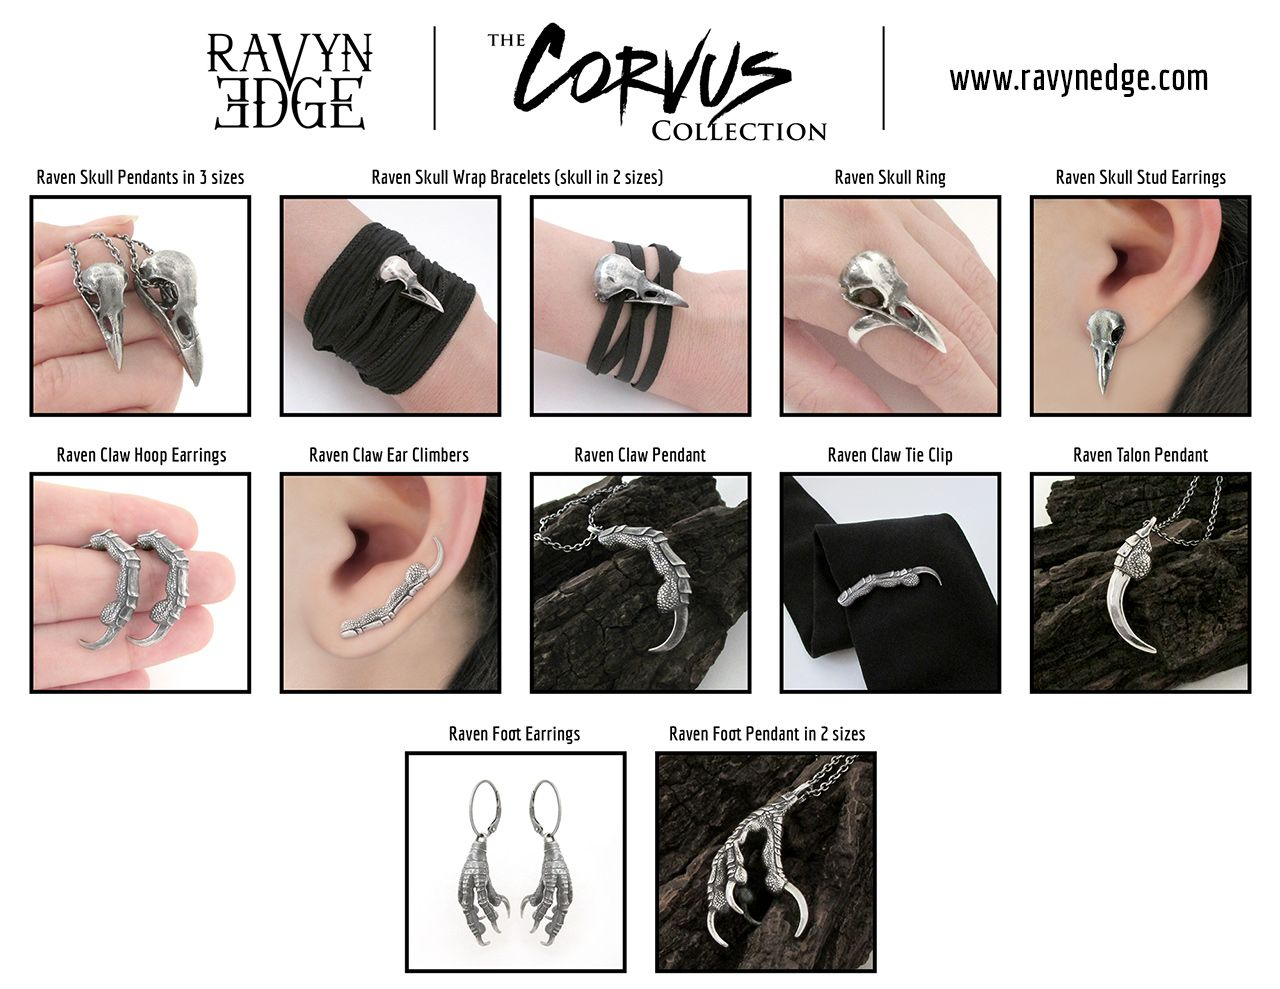 Tiffany J. Tinsley of RavynEdge is Set to Wow Jewelry Lovers with Her All-New Signature Line of Jewelry, The Corvus Collection #vikingsymbols